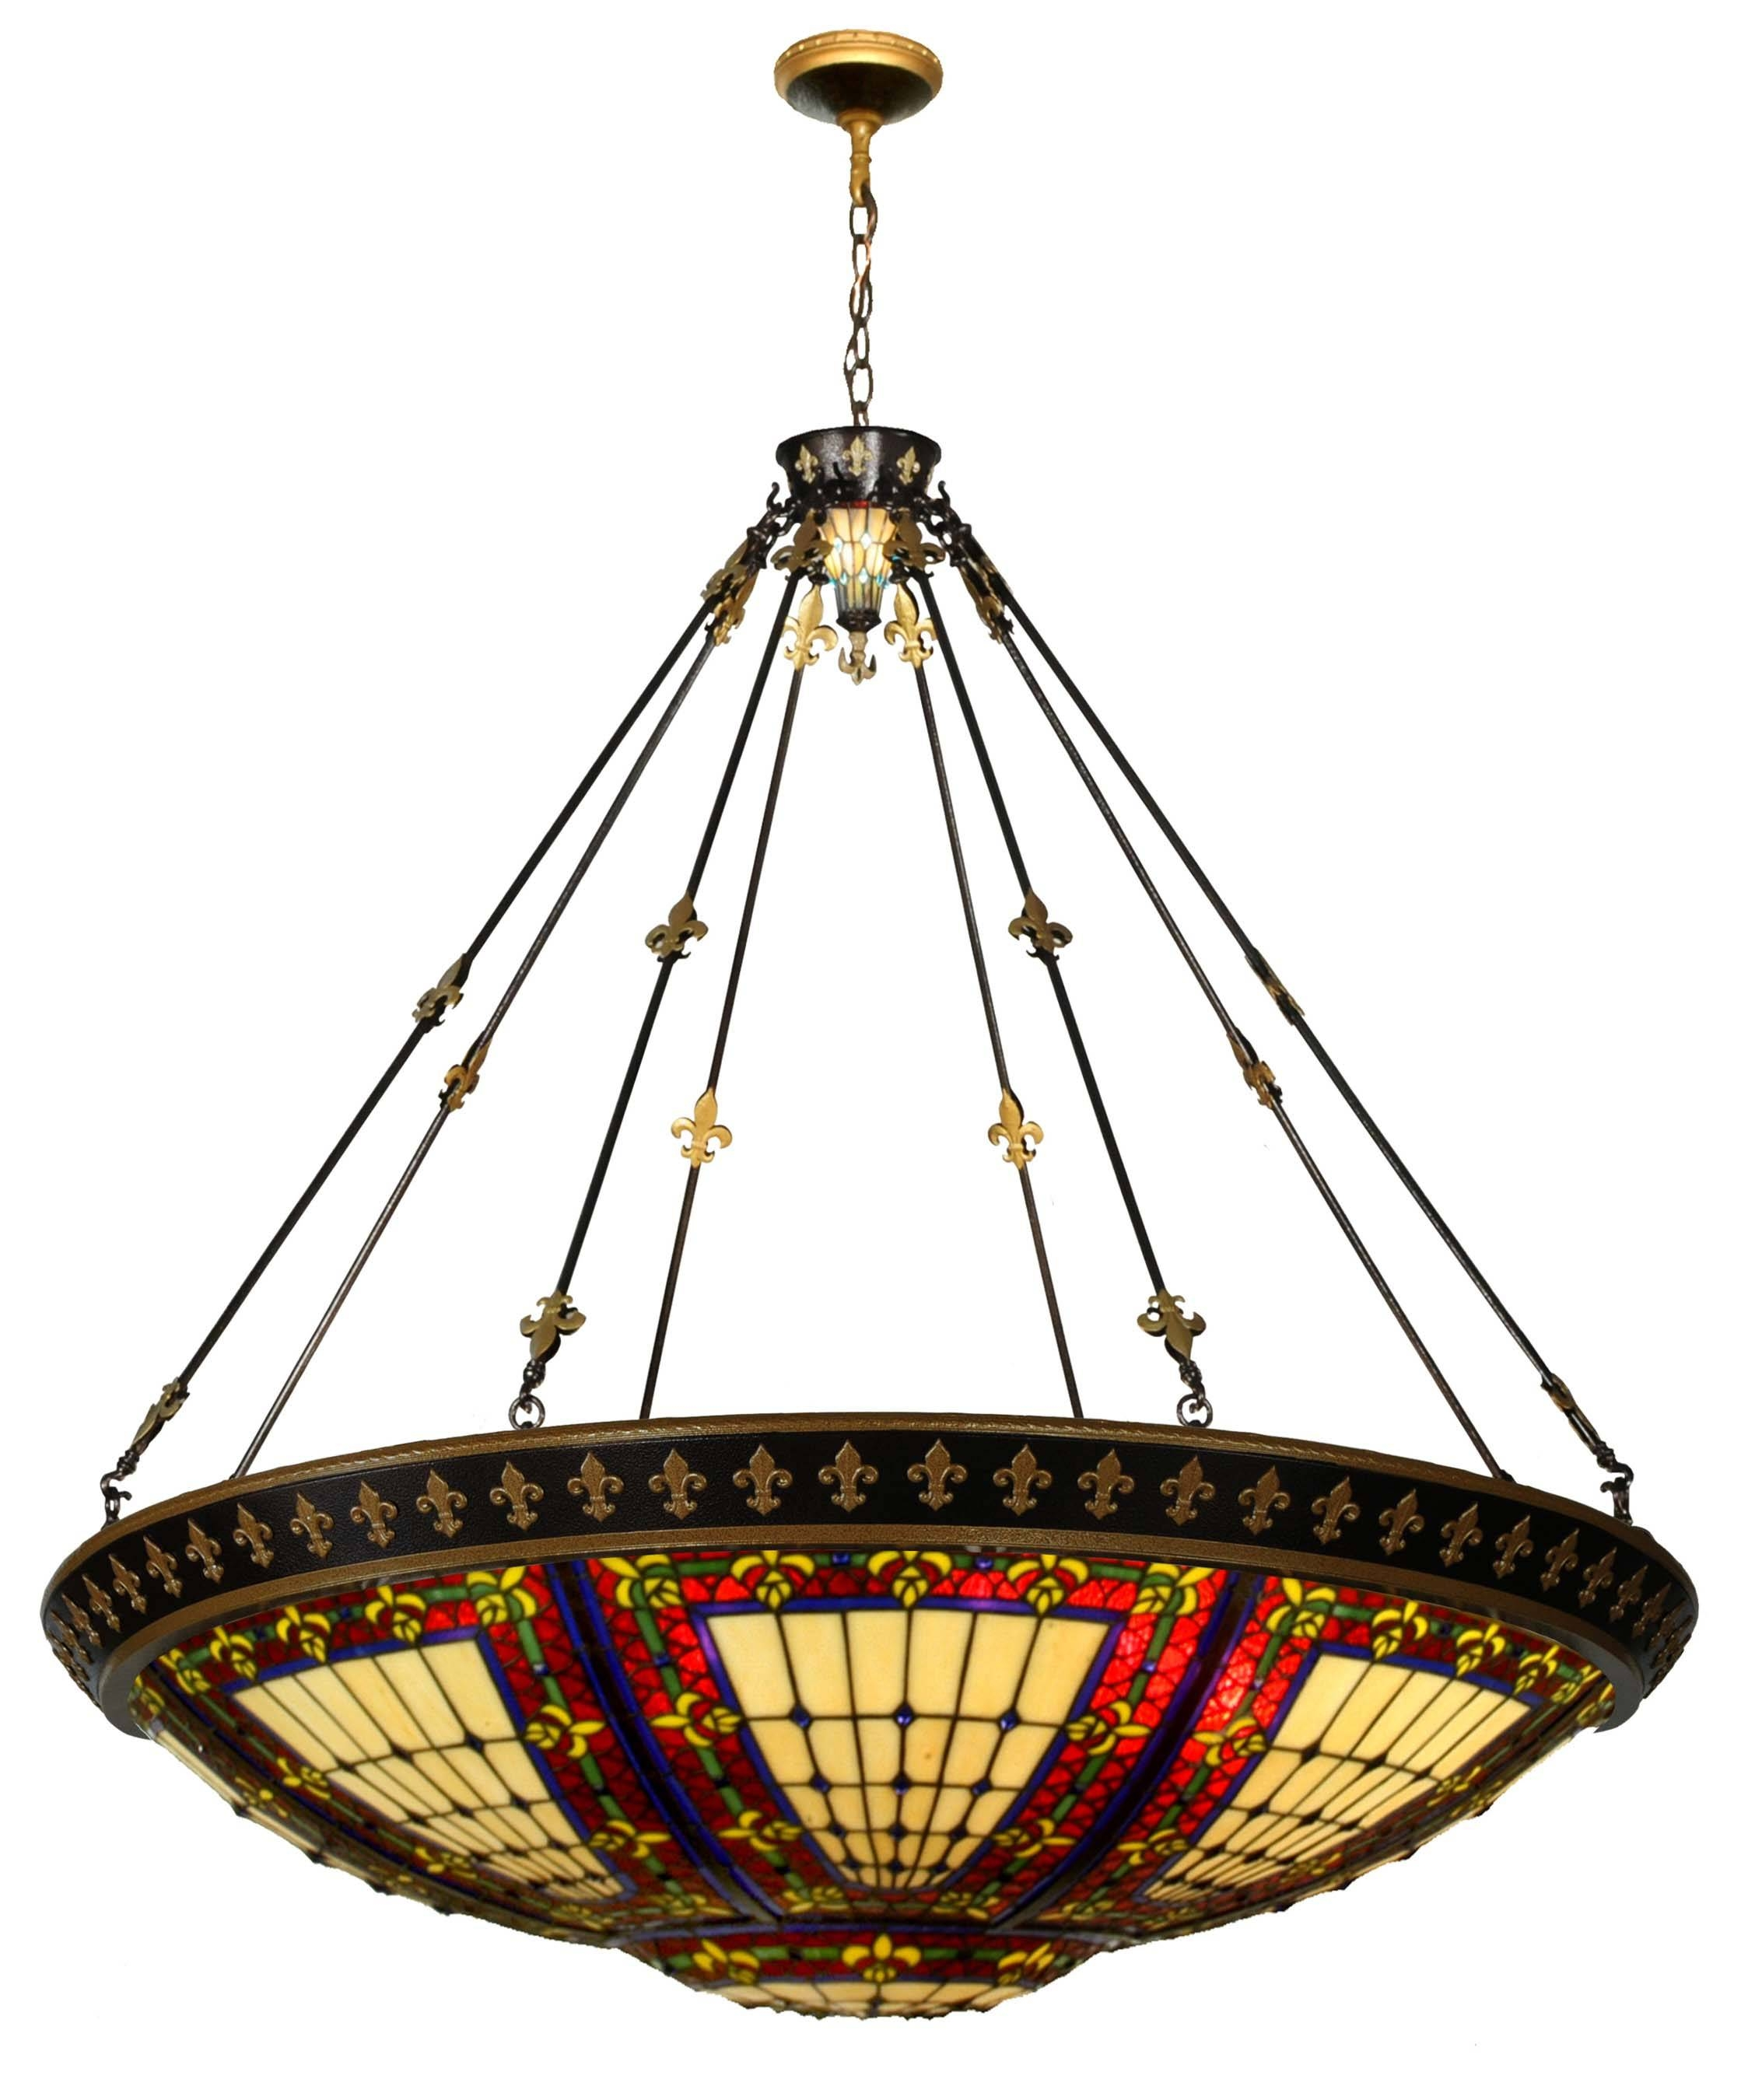 Chandeliers Design : Magnificent Chandelier Tiffany Style Pendant Throughout Tiffany Style Pendant Light Fixtures (View 14 of 15)